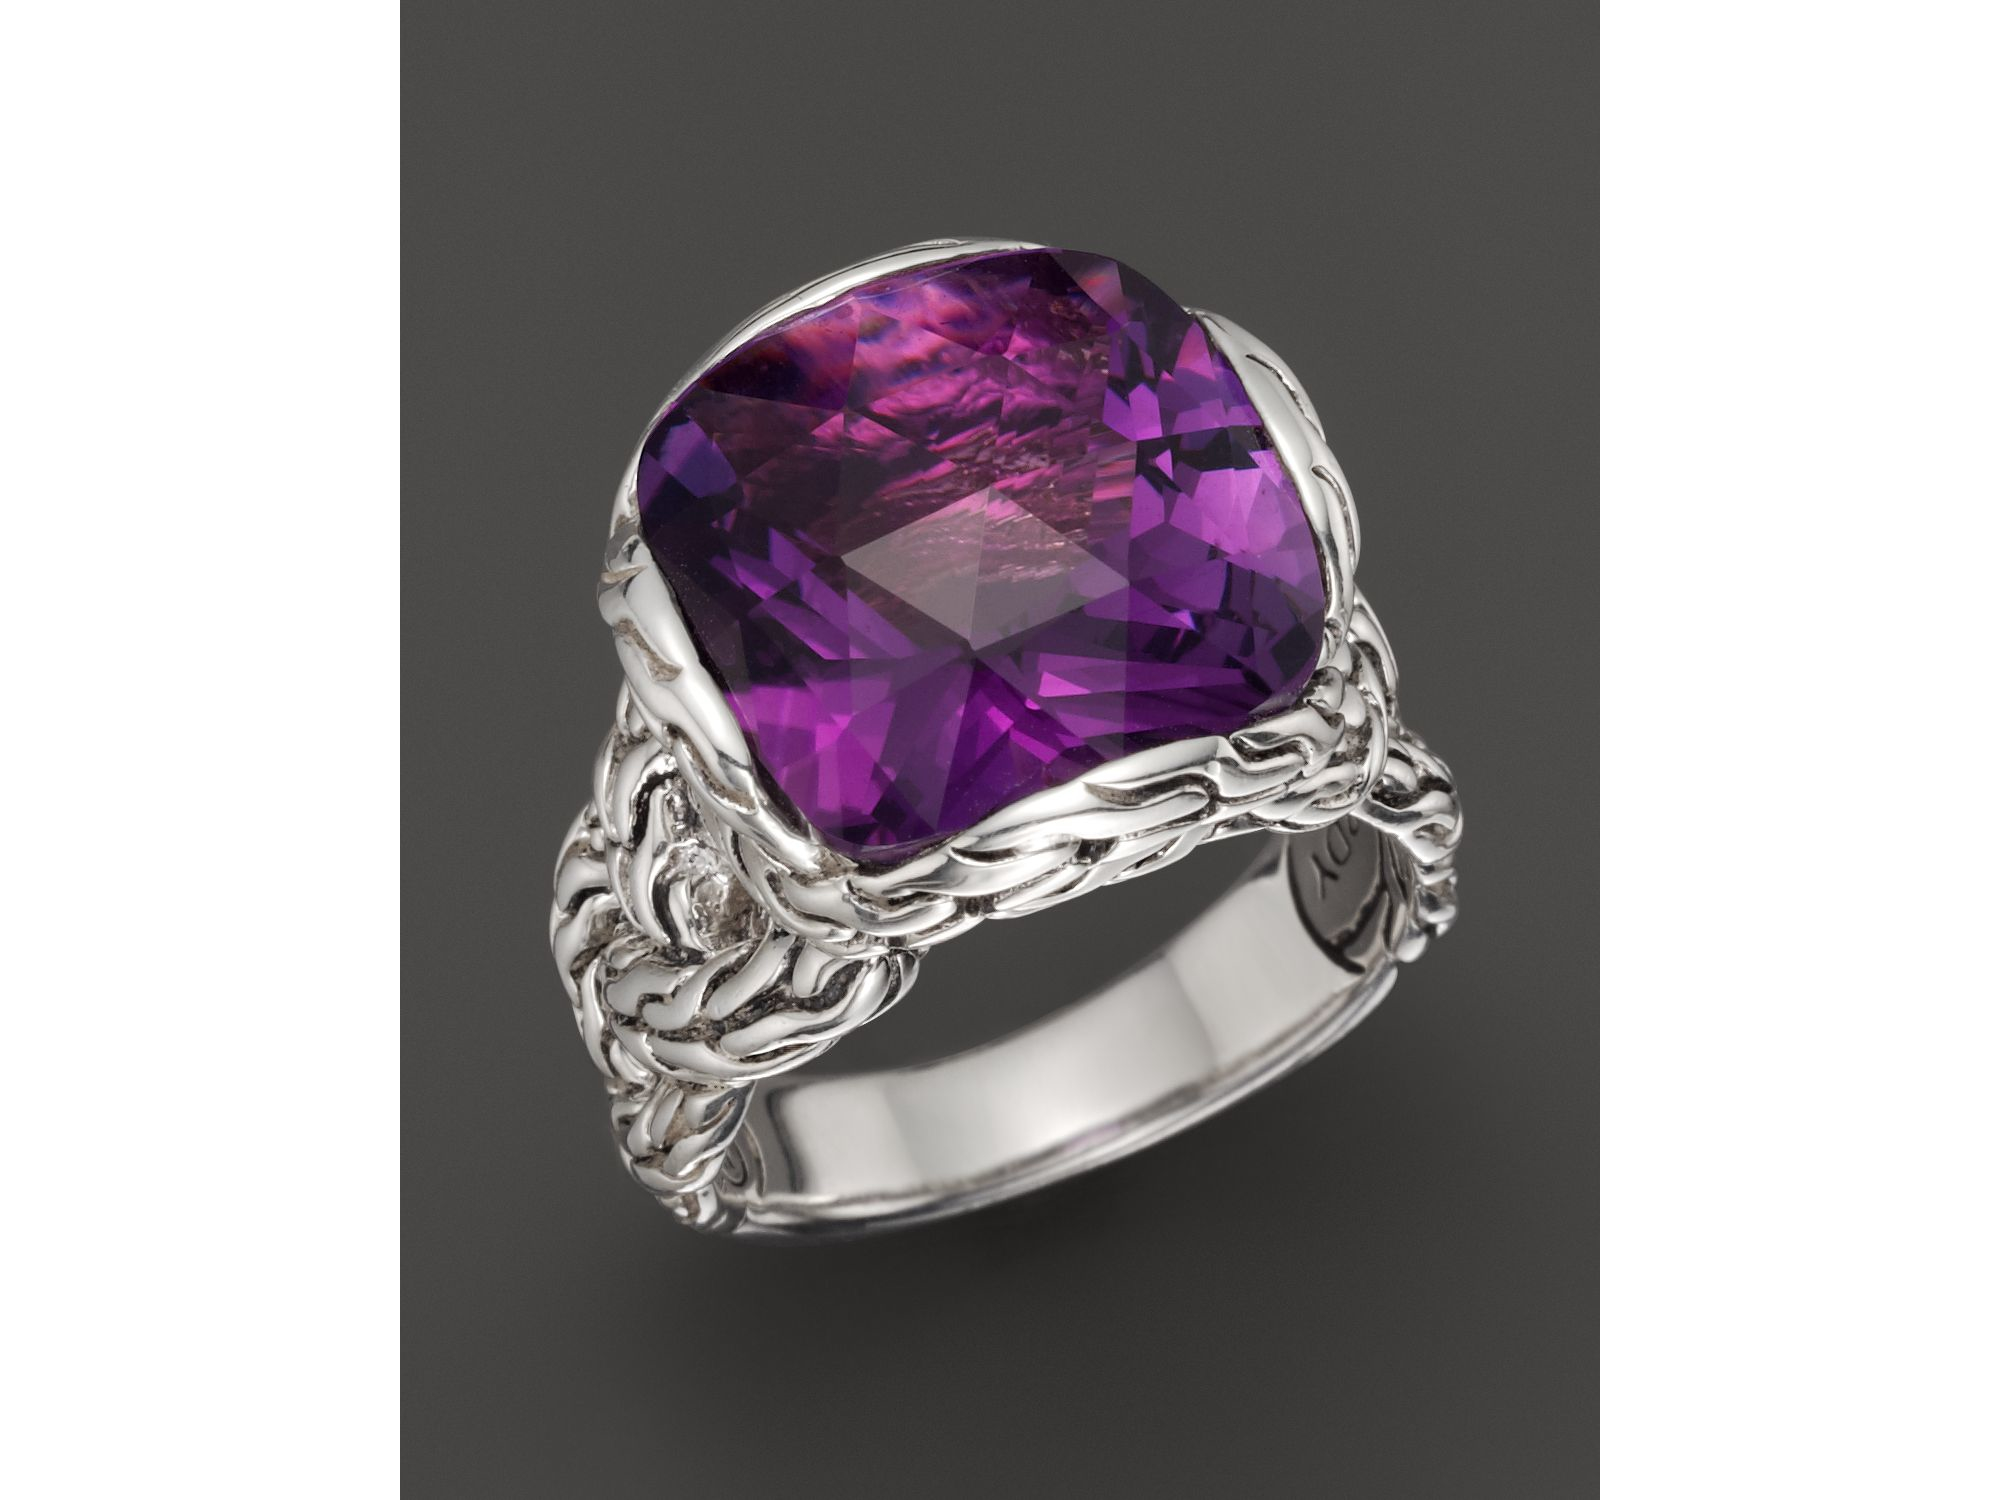 rings amethyst ring cut dp to solitaire silver sizes amazon sterling purple atuxdl com ct cz size mens princess